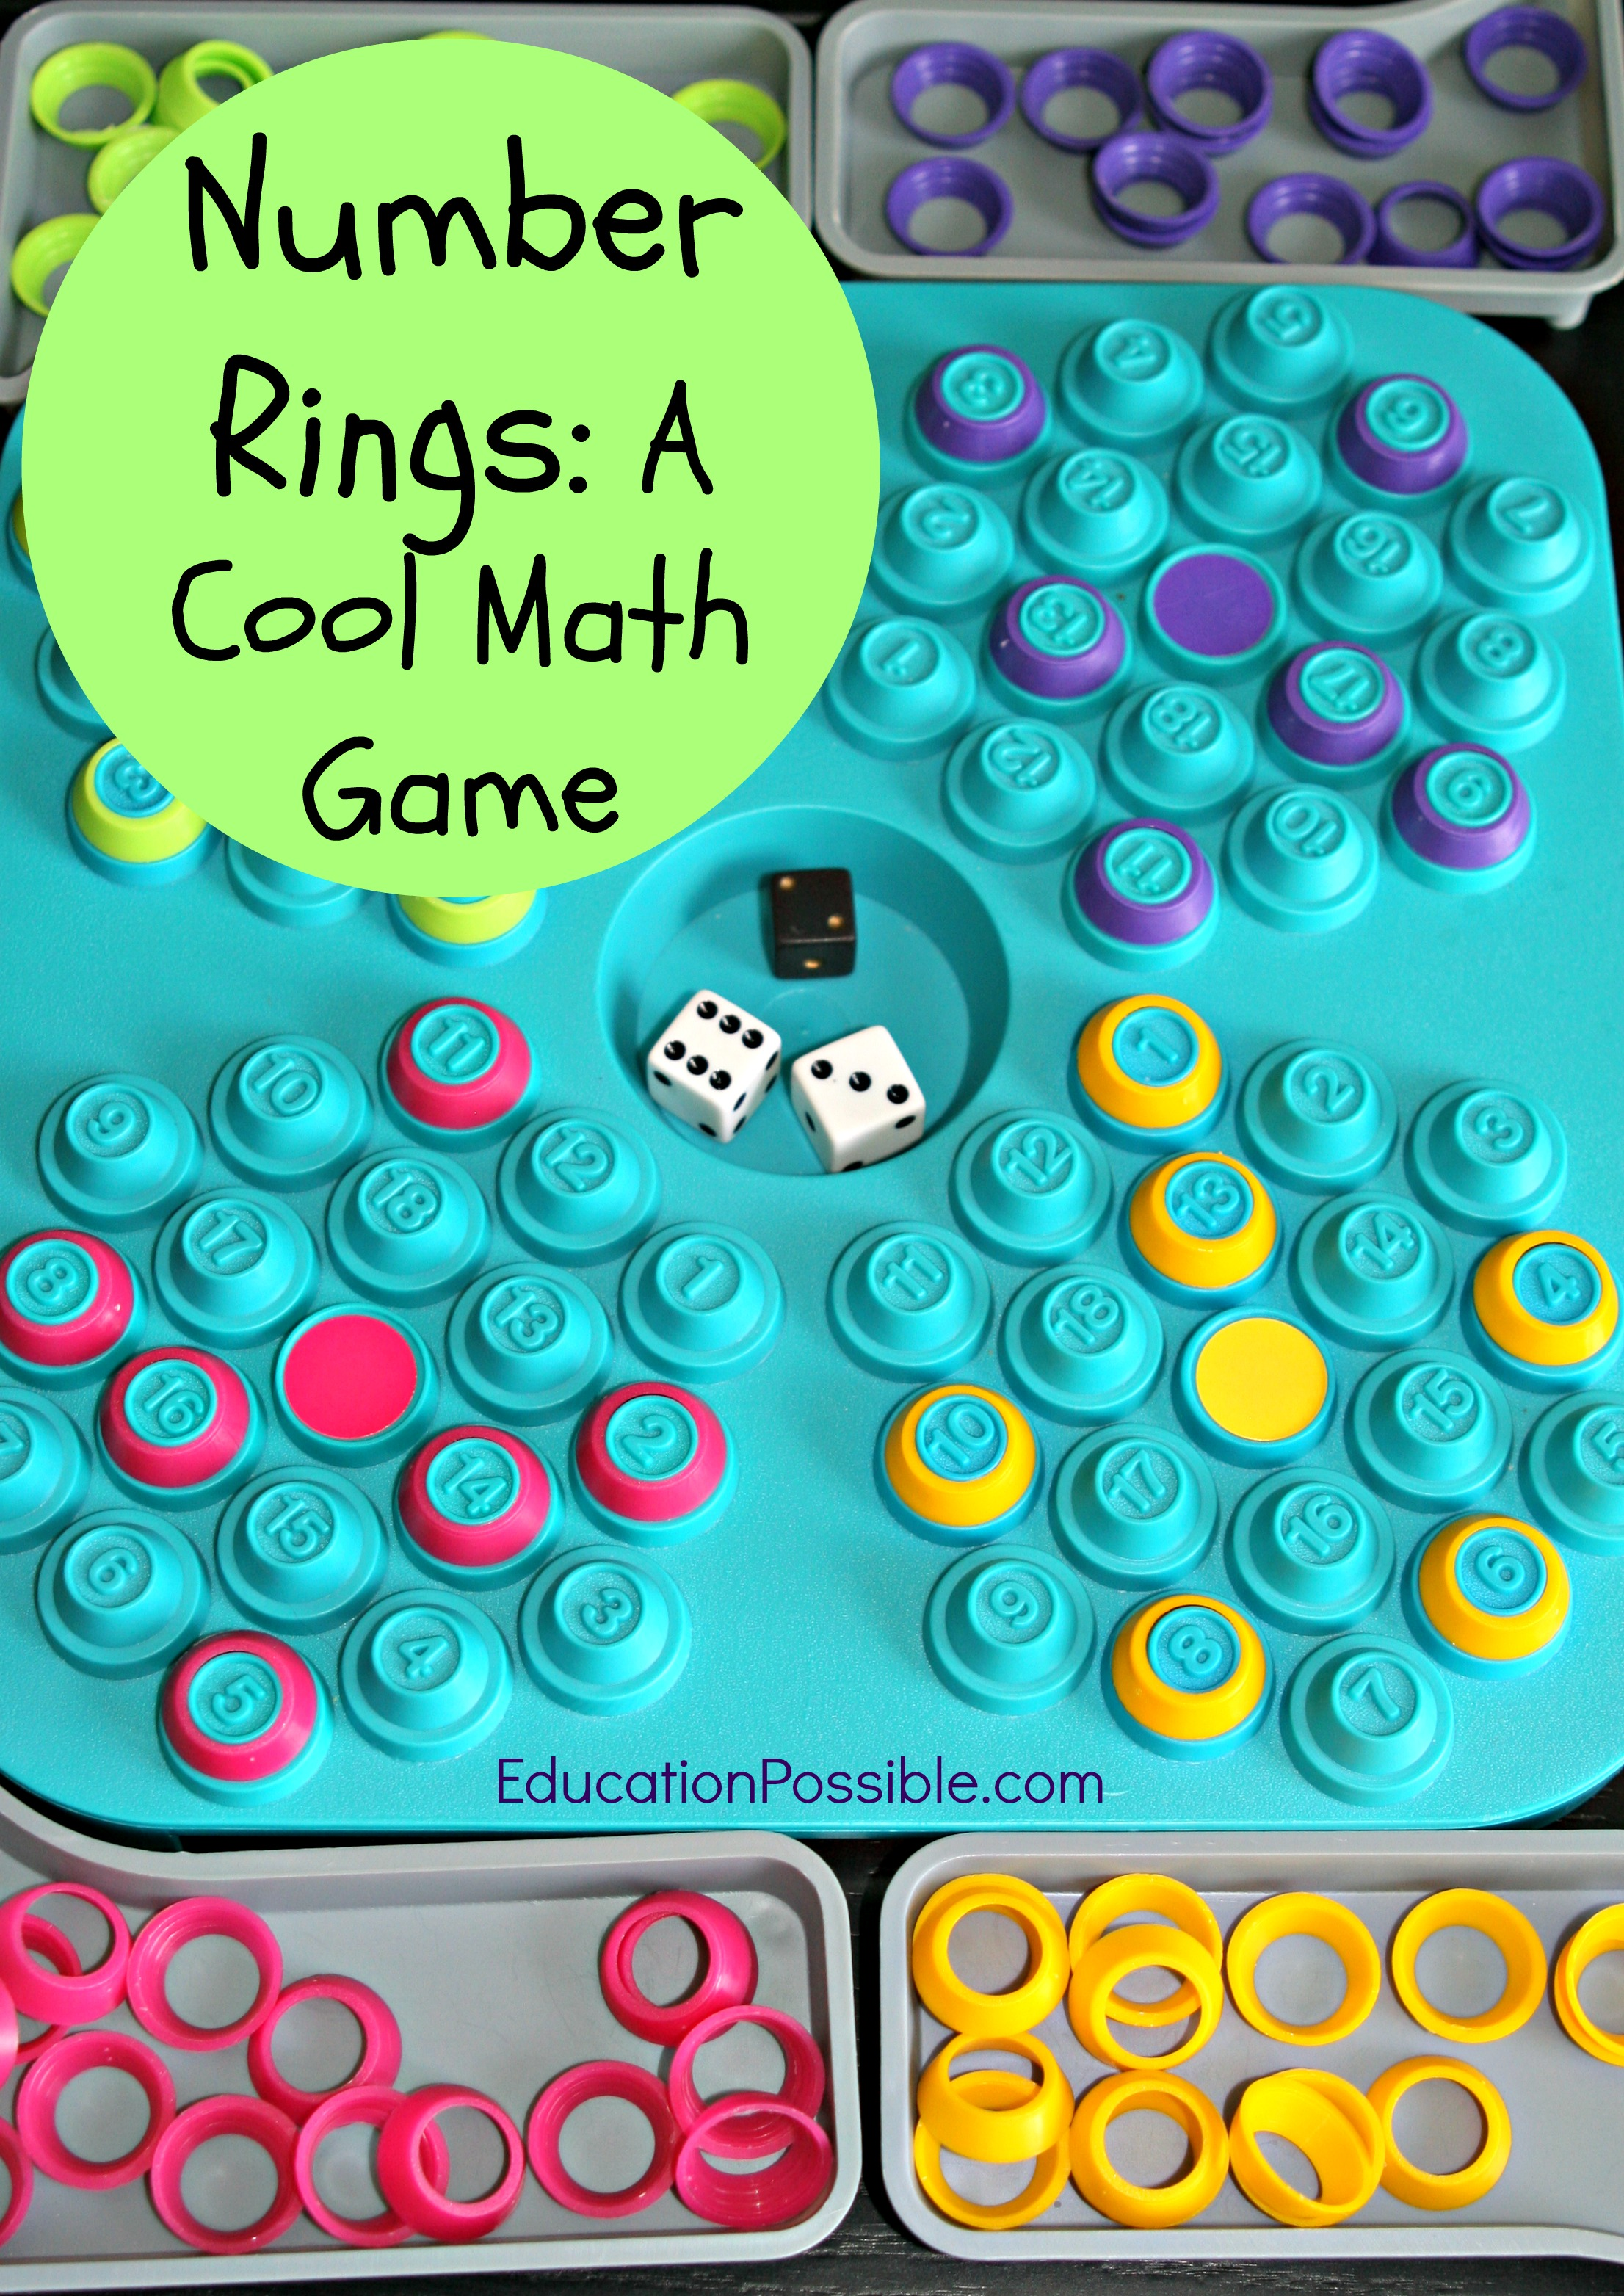 Number Rings A Cool Math Game